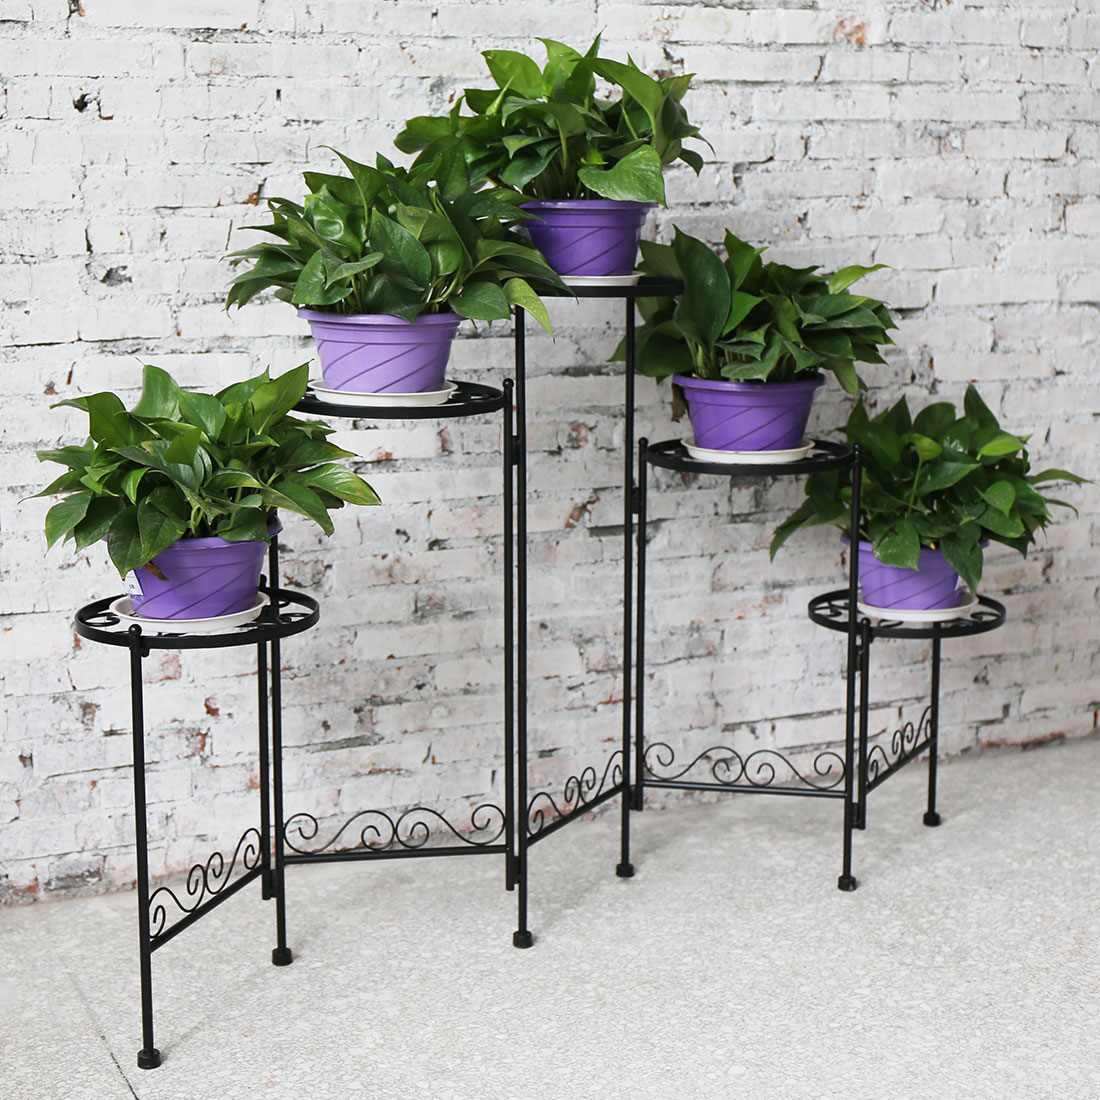 Folding garden metal plant stand home office decor 5 for Decoration metal pour jardin